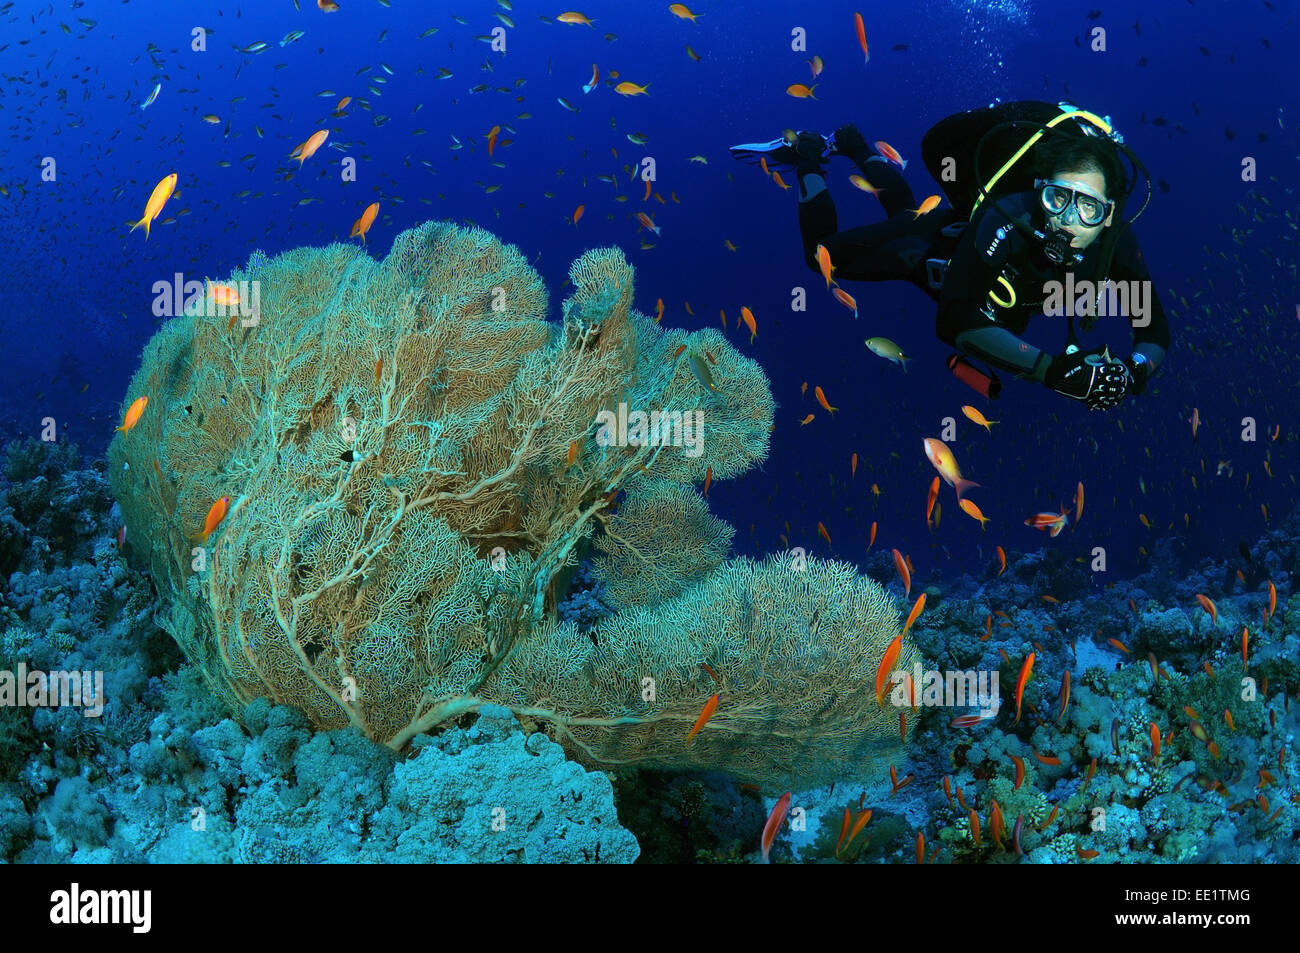 Diver looks at coral purple gorgonian seafan (Gorgonia flabellum) Red sea, Egypt, Africa Stock Photo